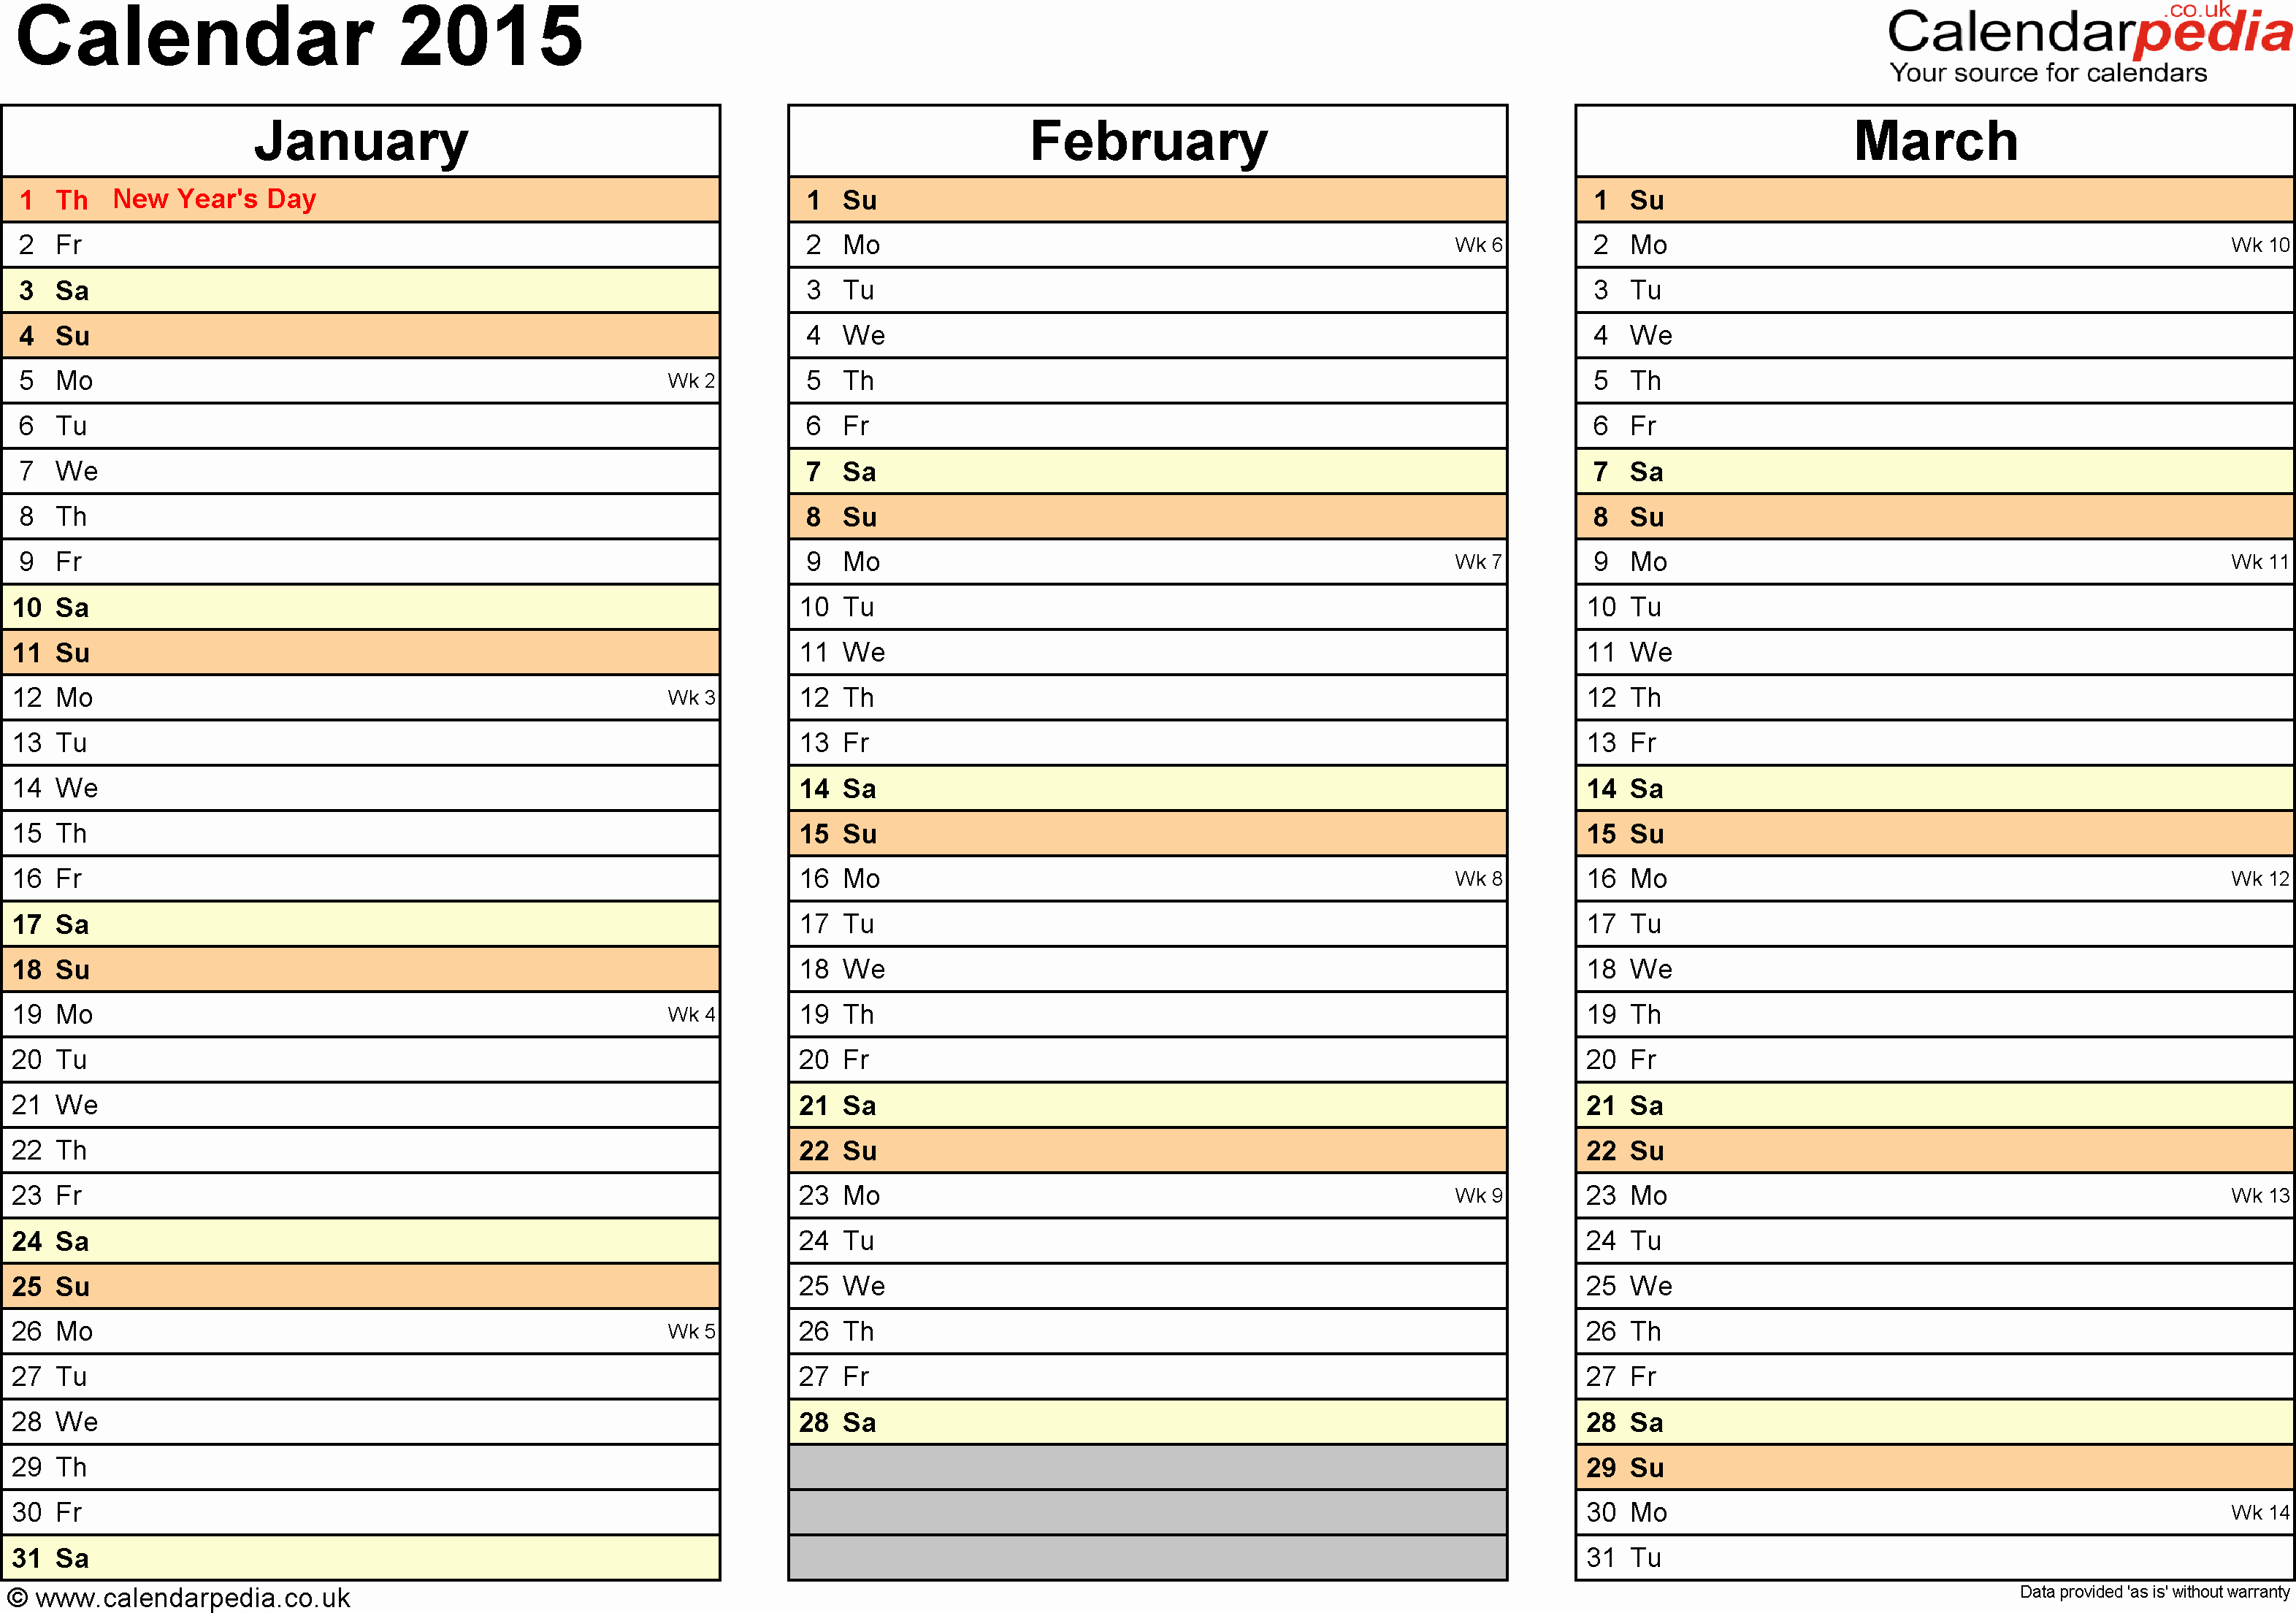 5 Day Calendar Template Word Inspirational Calendar 2015 Uk 16 Free Printable Word Templates